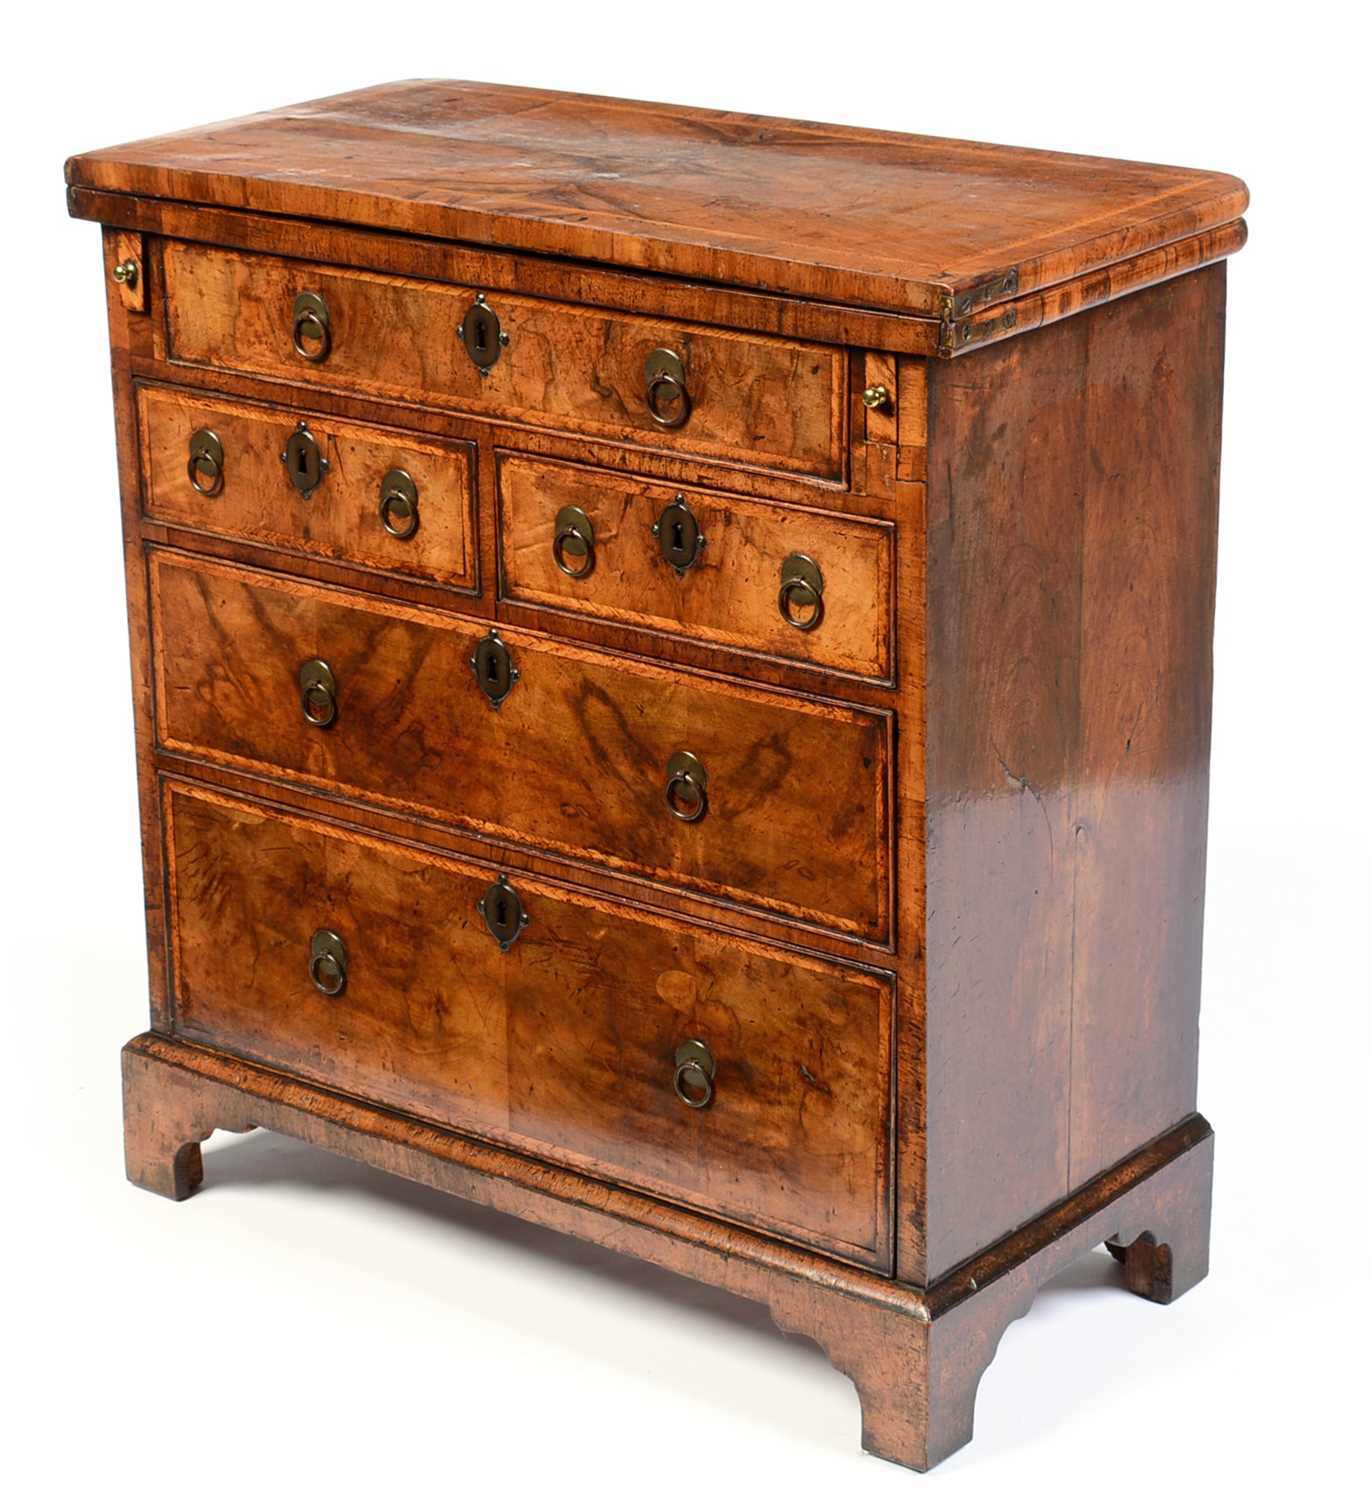 Early 18th Century walnut bachelors chest